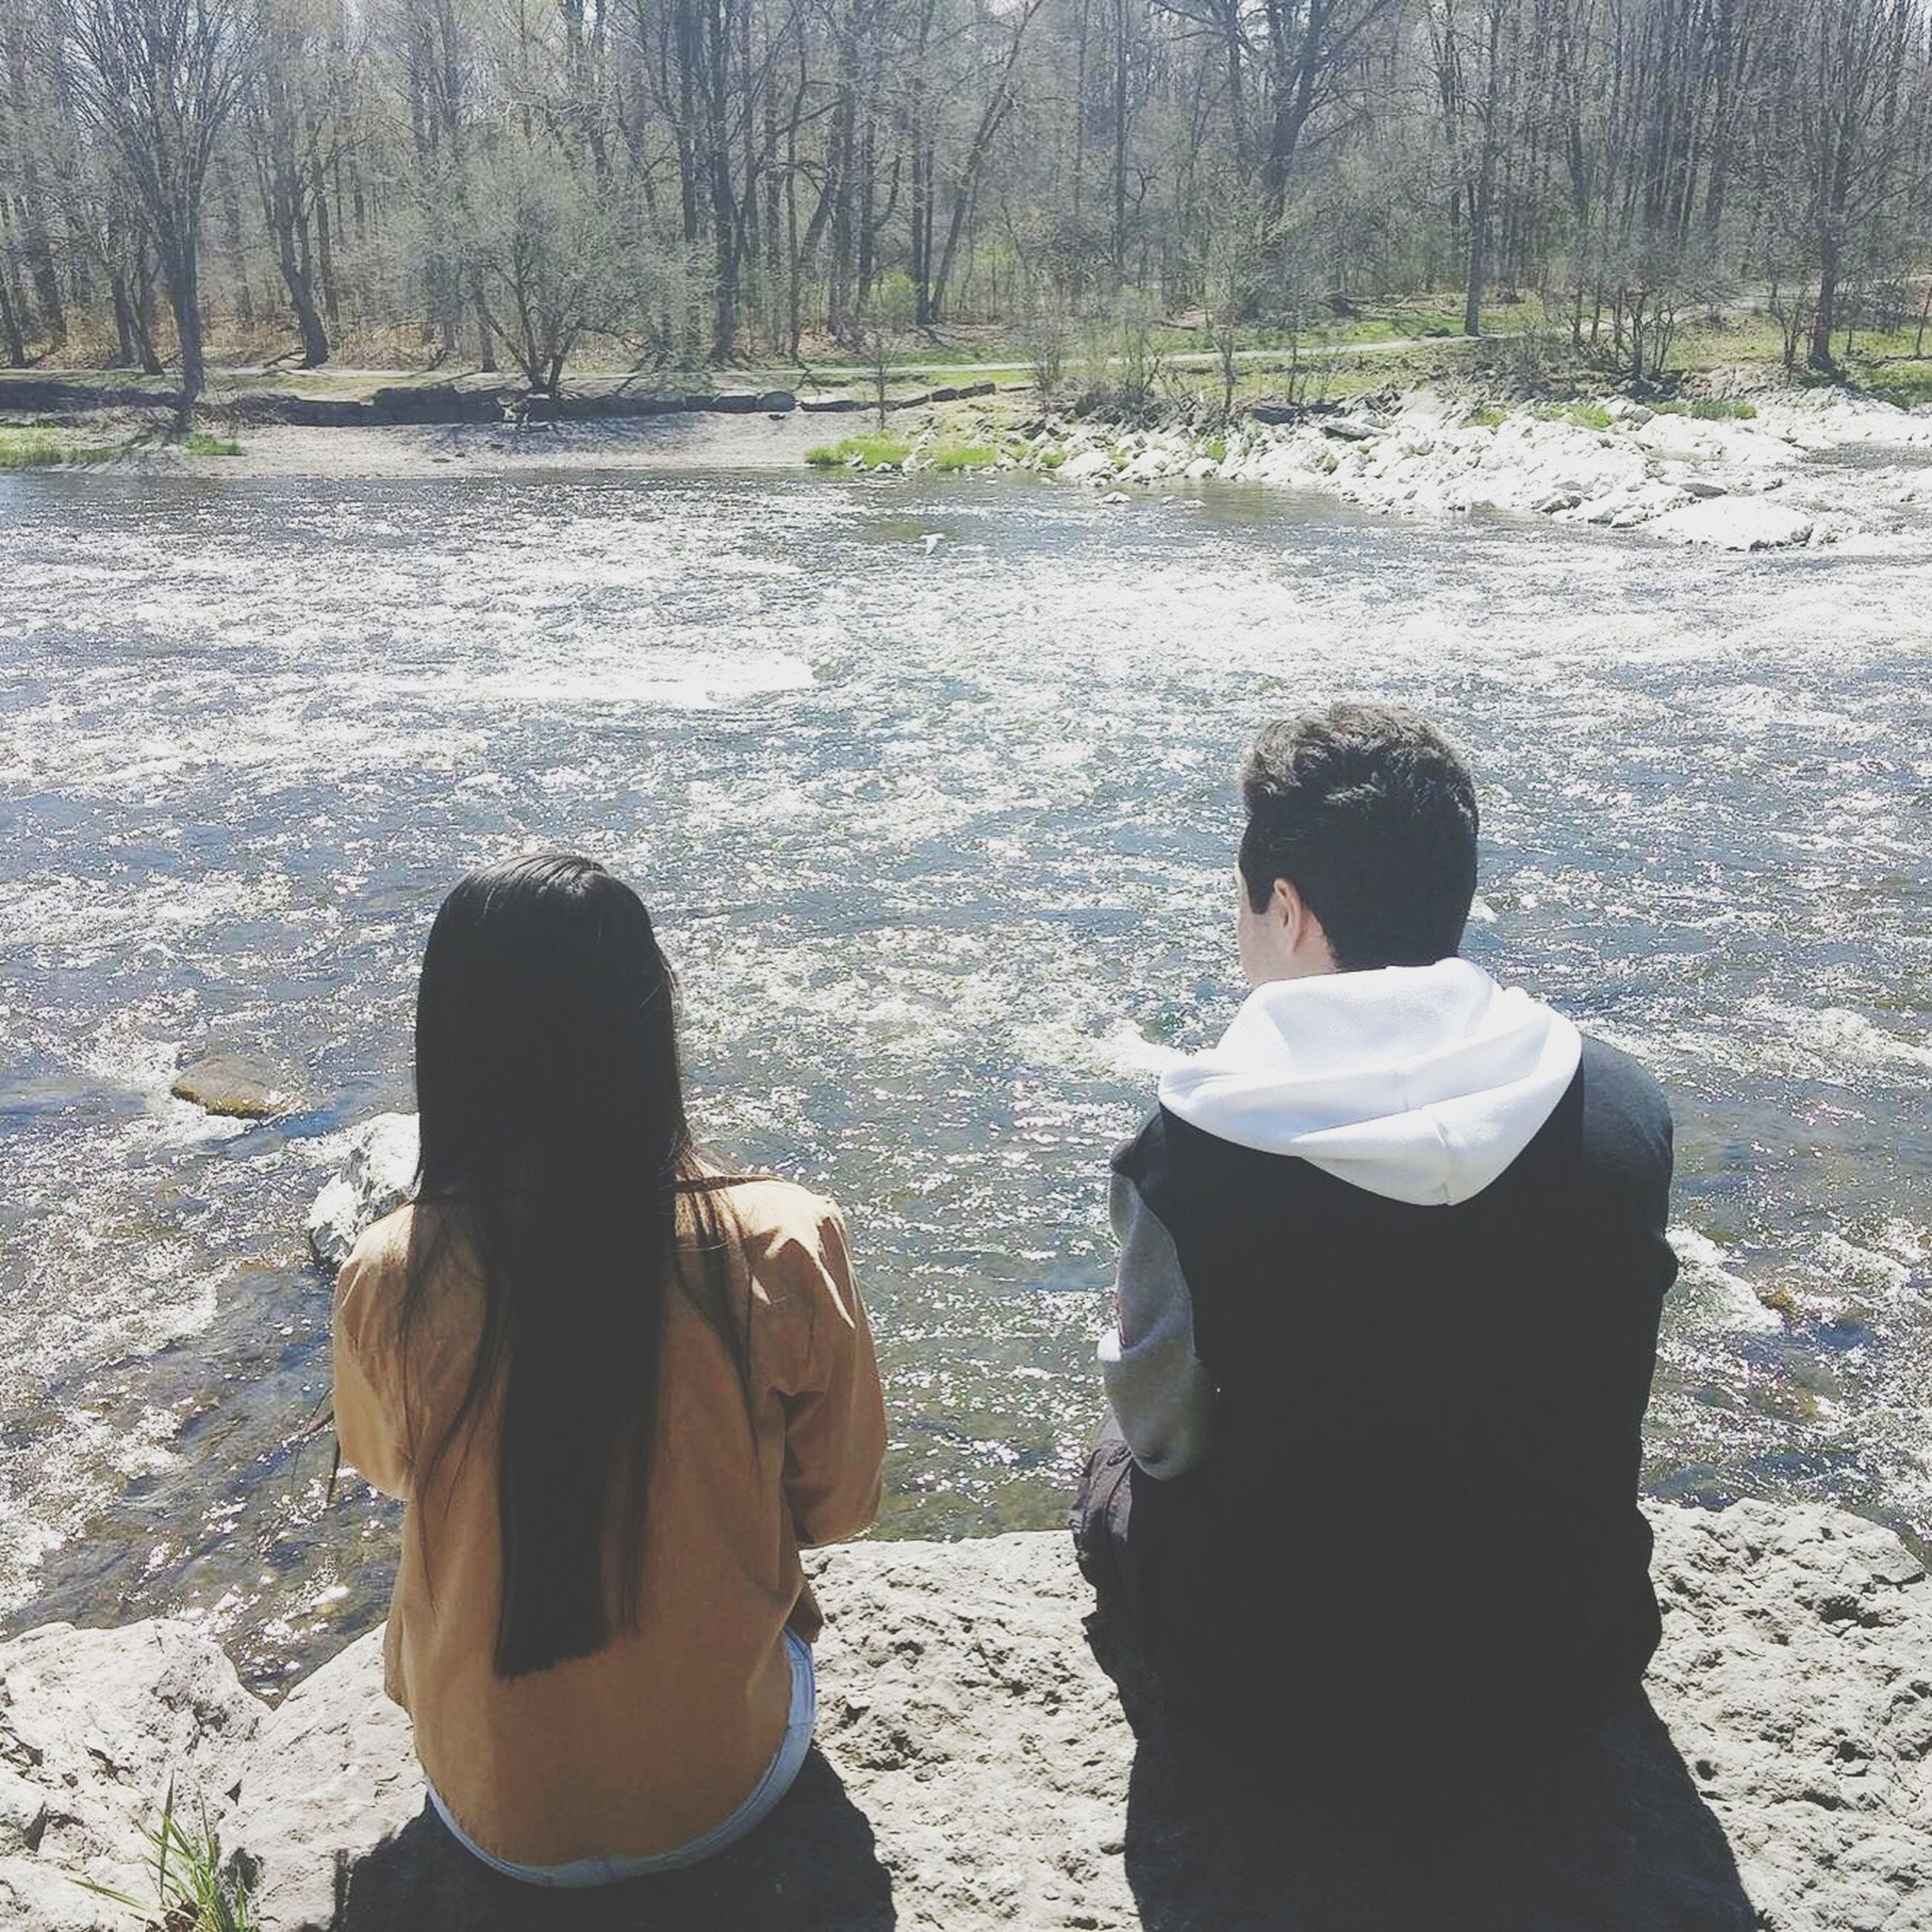 rear view, lifestyles, leisure activity, person, casual clothing, standing, water, three quarter length, men, togetherness, waist up, tree, sitting, bonding, nature, day, outdoors